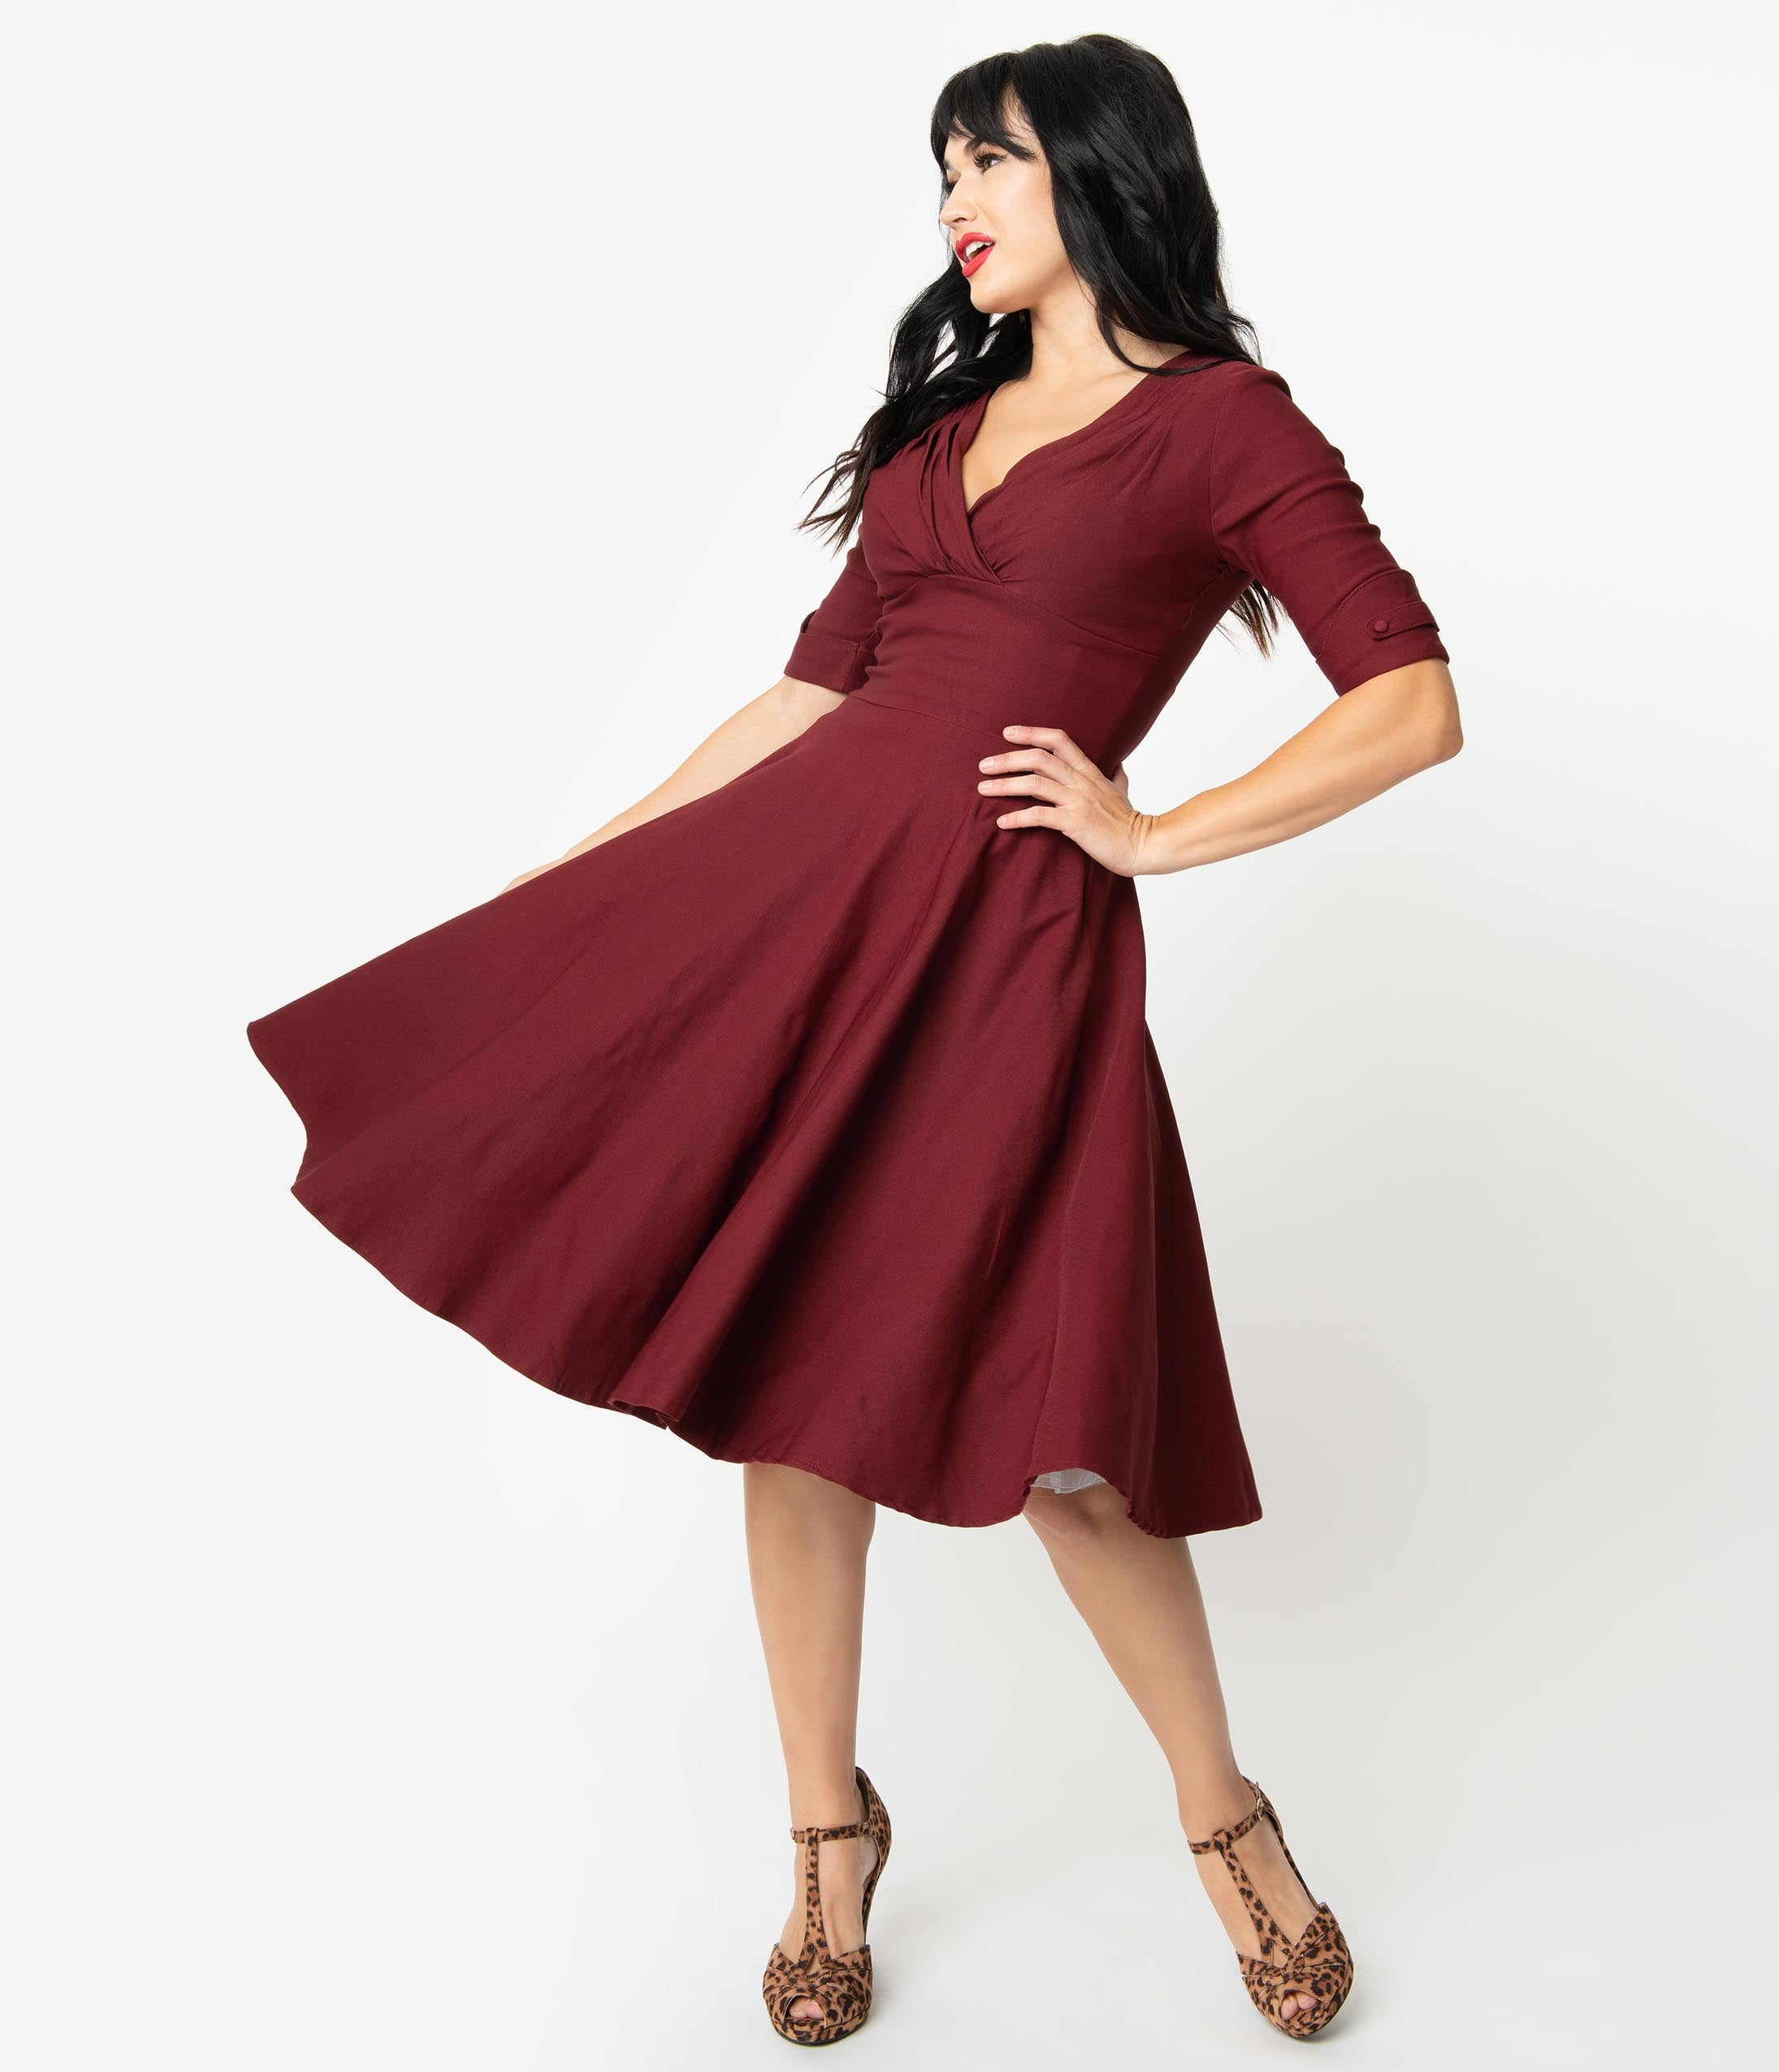 Rockabilly Dresses | Rockabilly Clothing | Viva Las Vegas Unique Vintage 1950S Burgundy Red Delores Swing Dress With Sleeves $88.00 AT vintagedancer.com